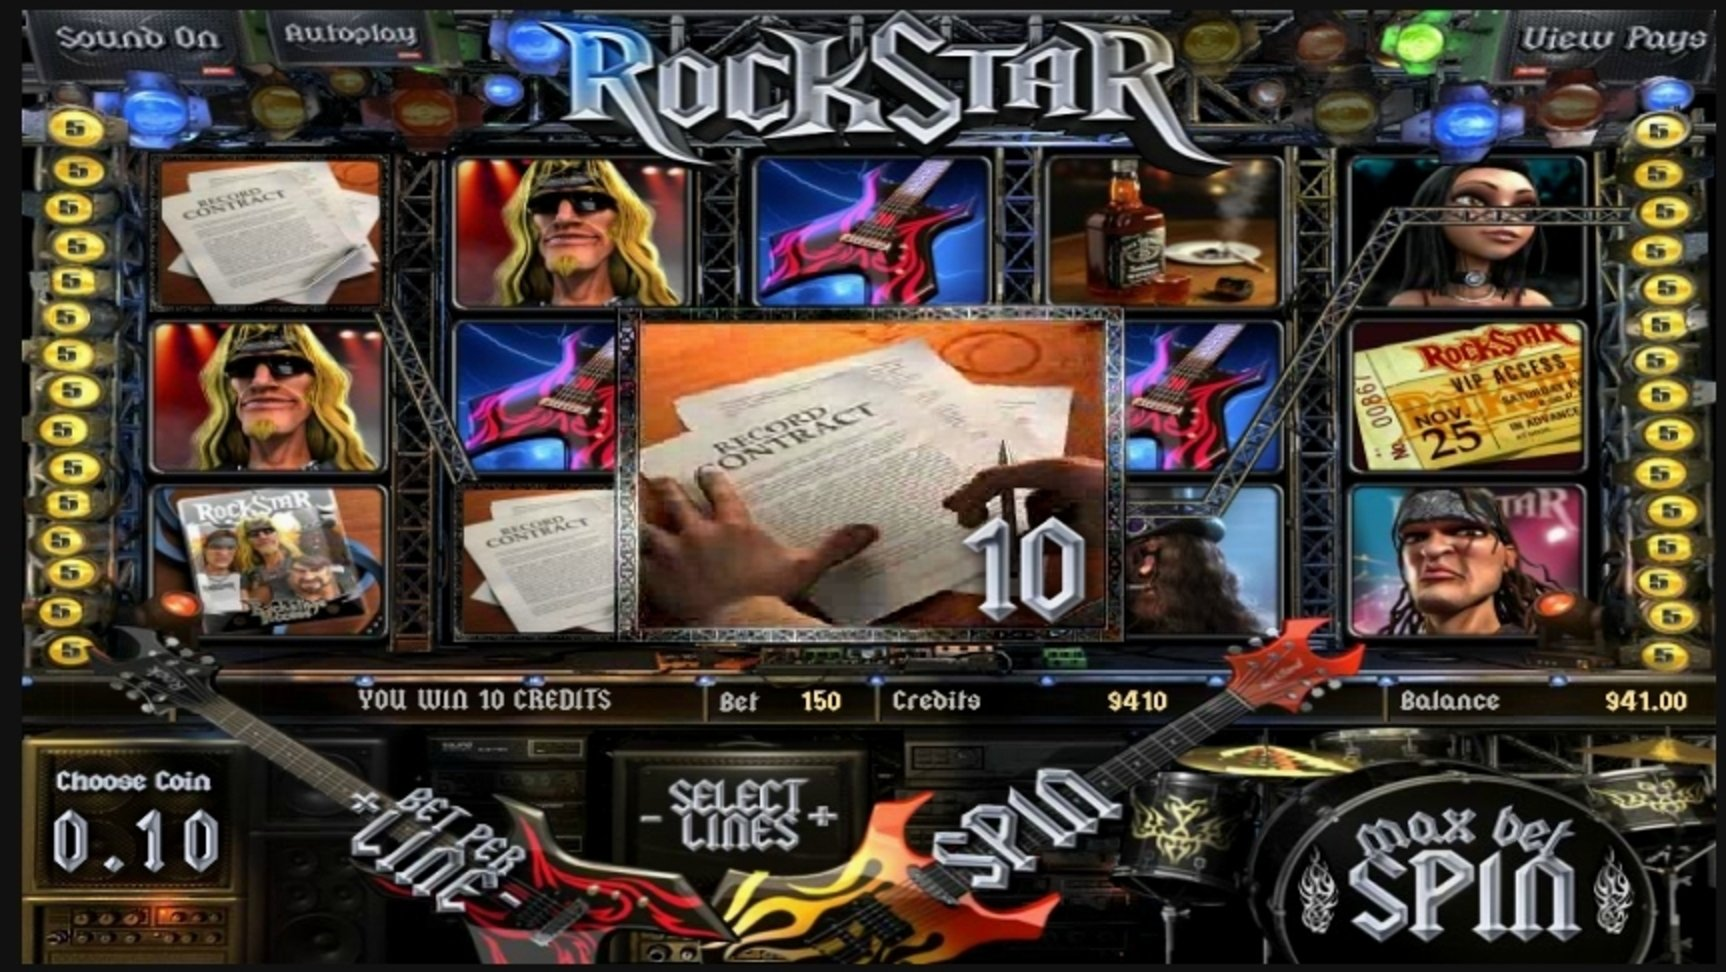 Win Money in RockStar Free Slot Game by Betsoft